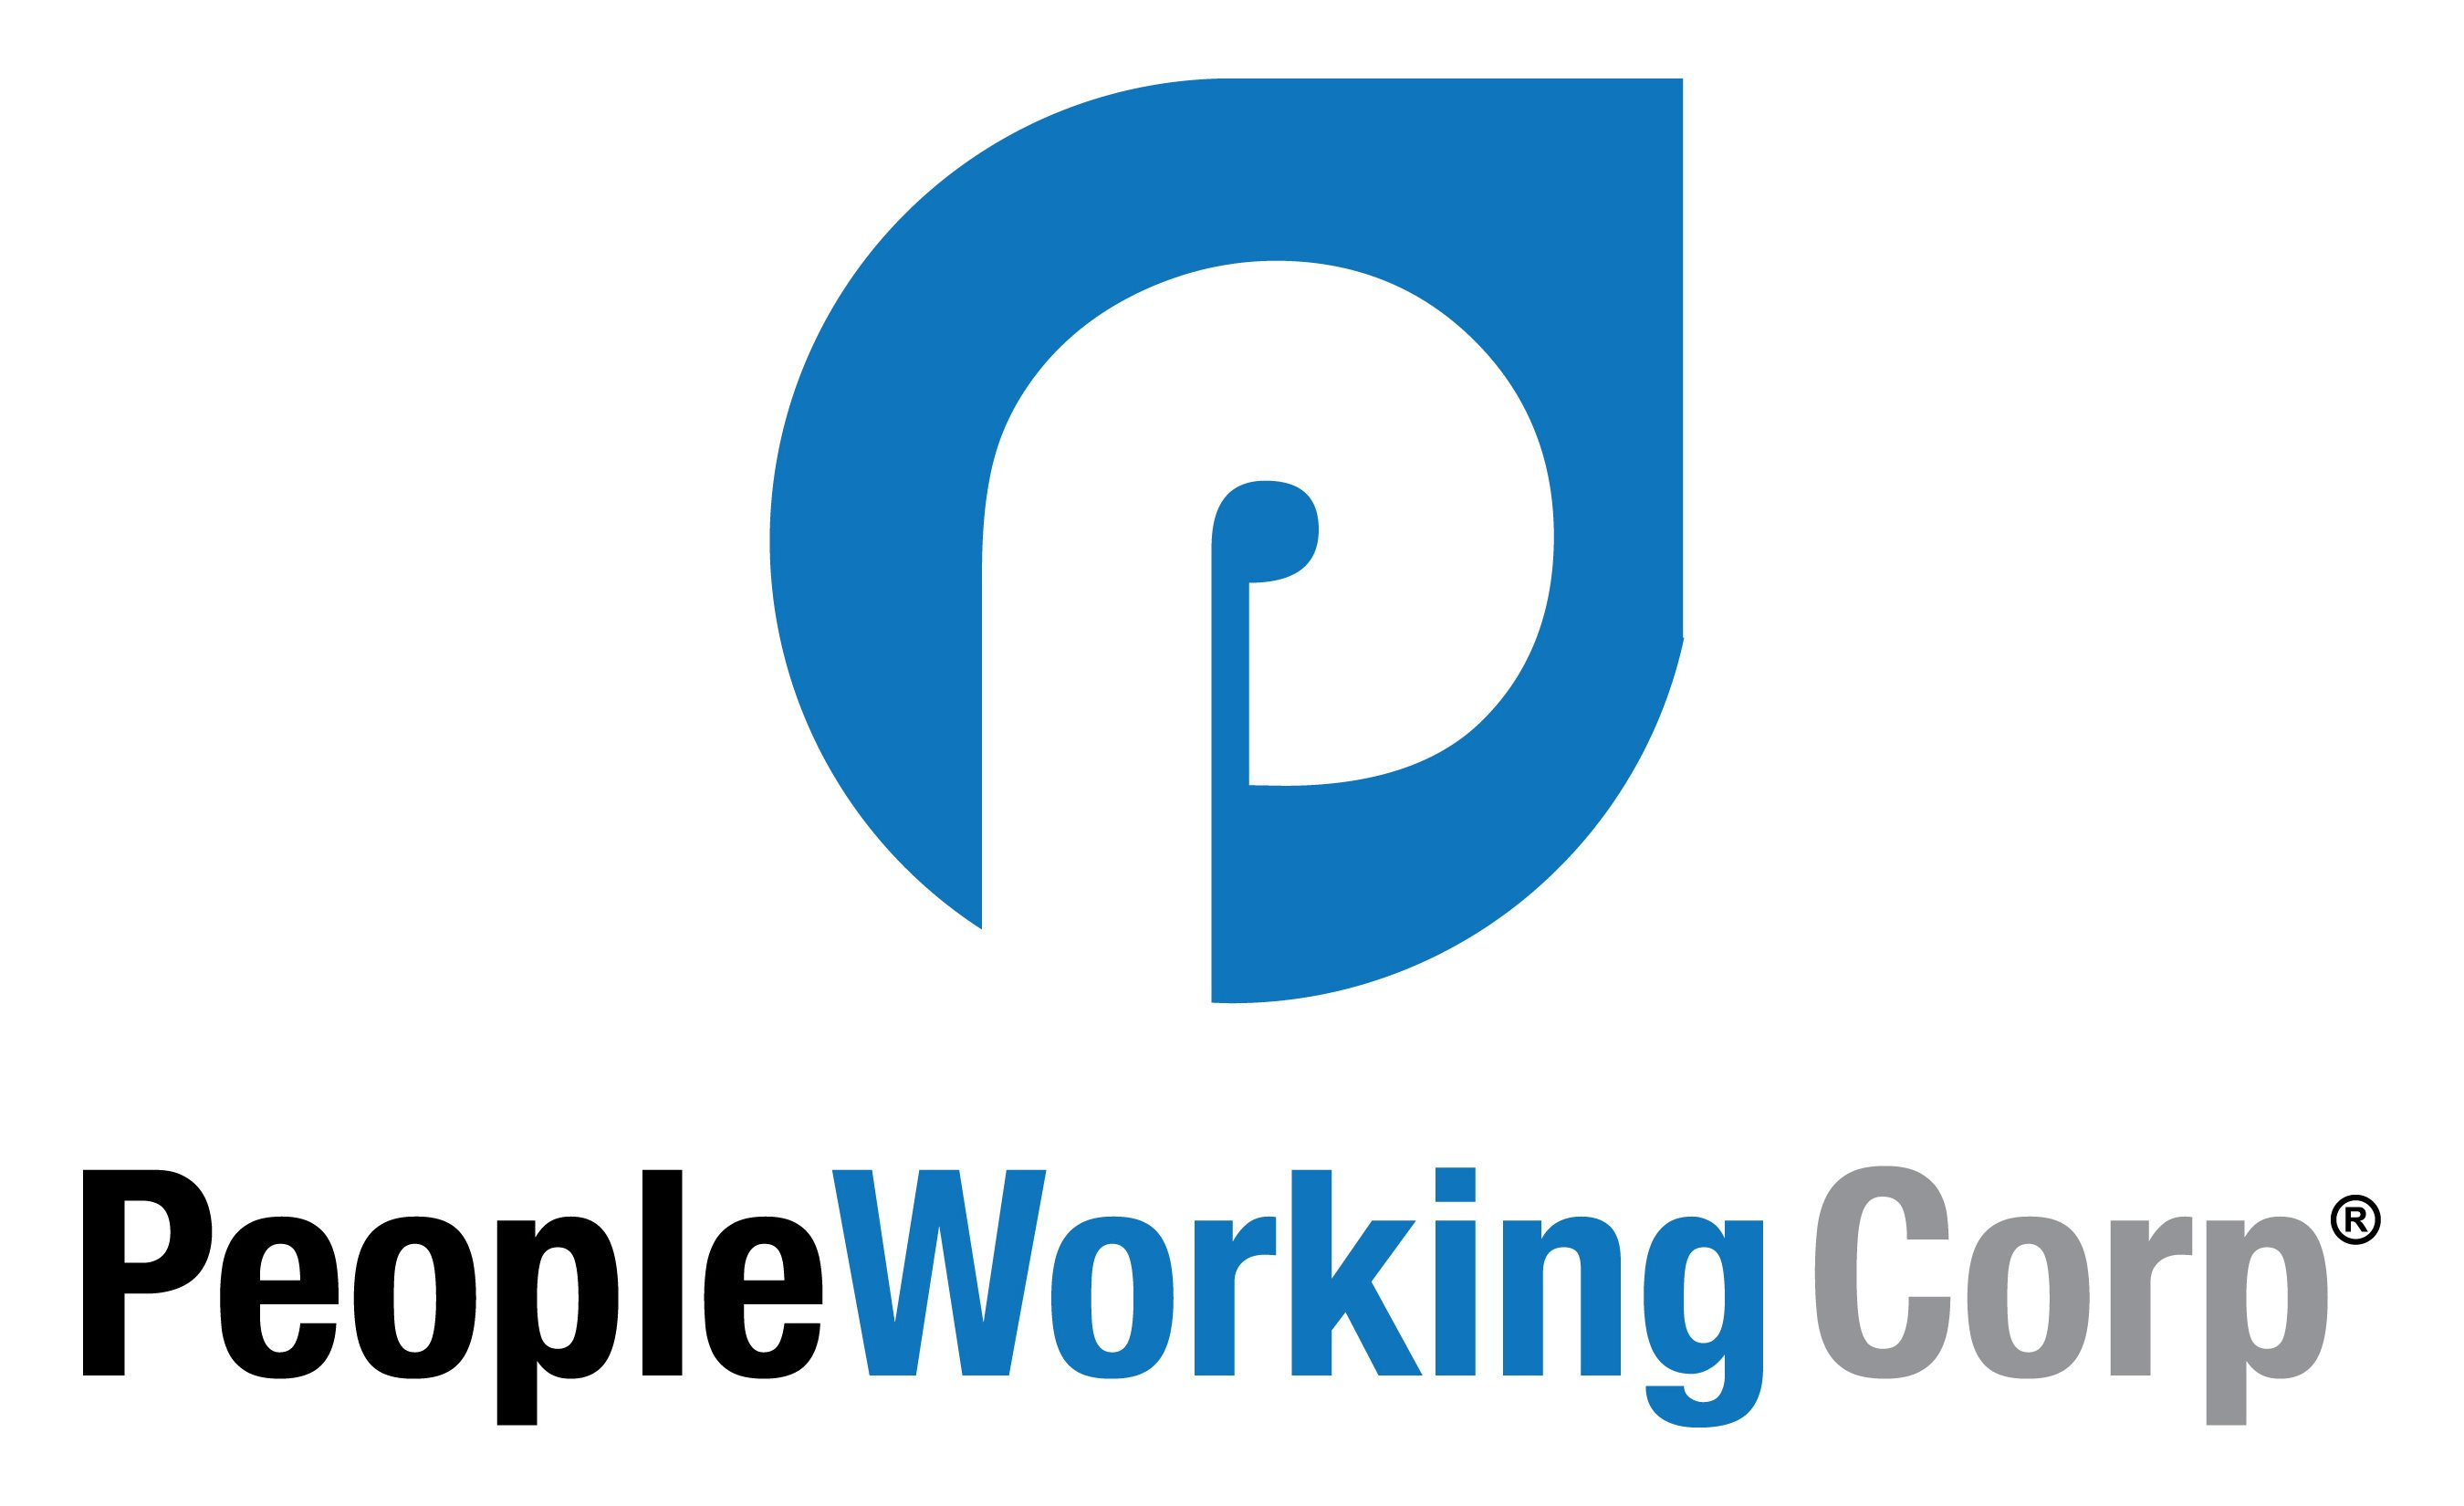 PEOPLE WORKING CORP.